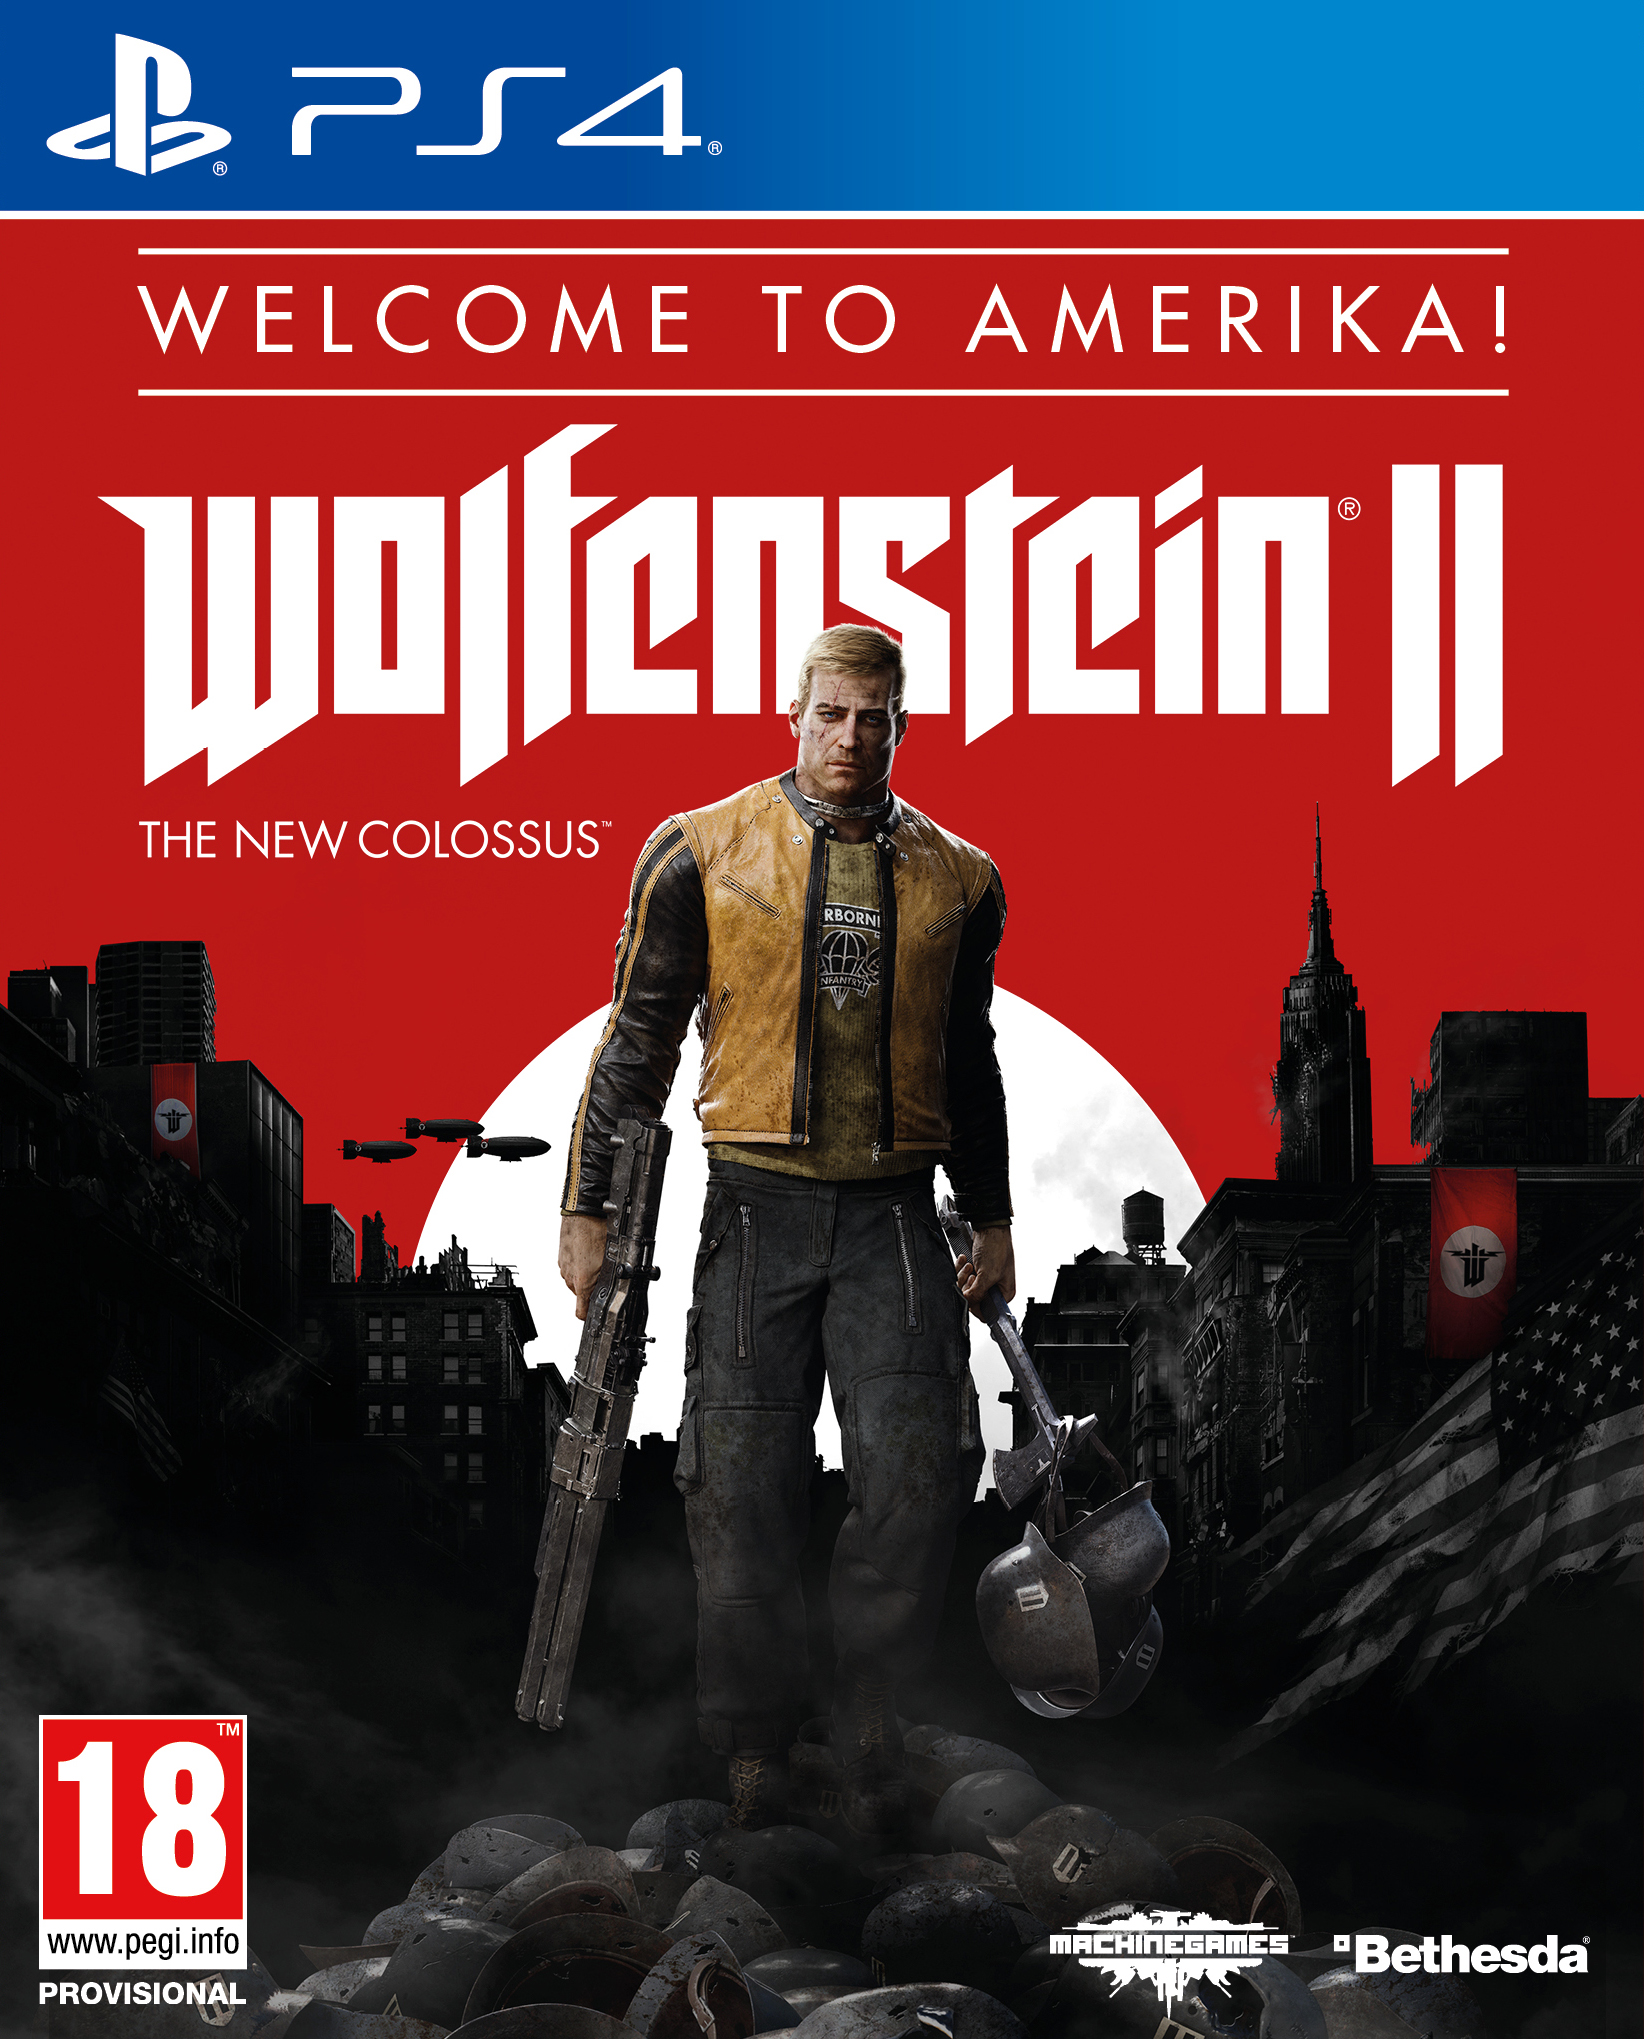 Wolfenstein II The New Colossus Welcome to Amerika Edition - PlayStation 4 Játékok